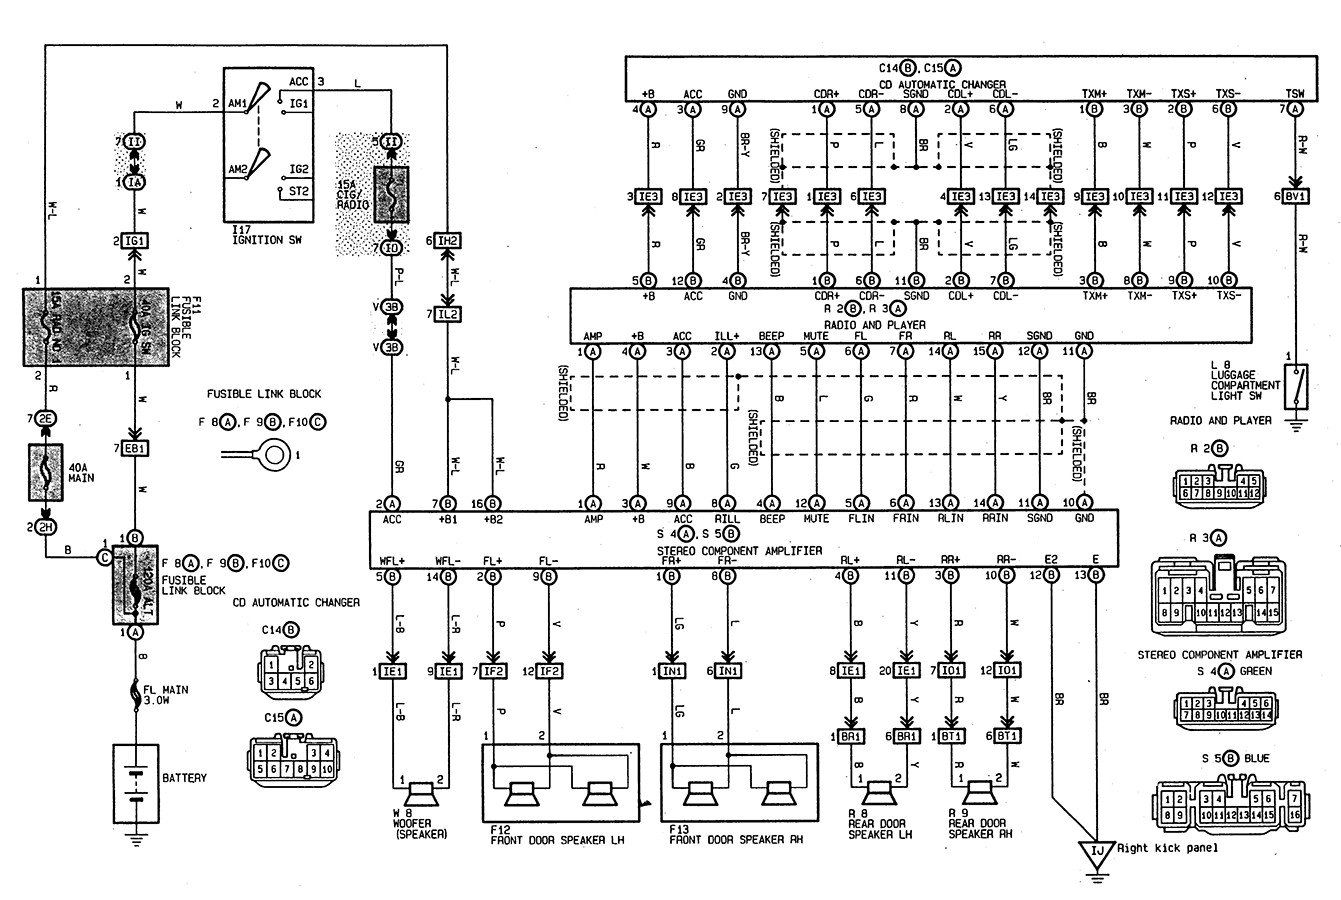 Toyota Matrix Wiring Diagram Toyota